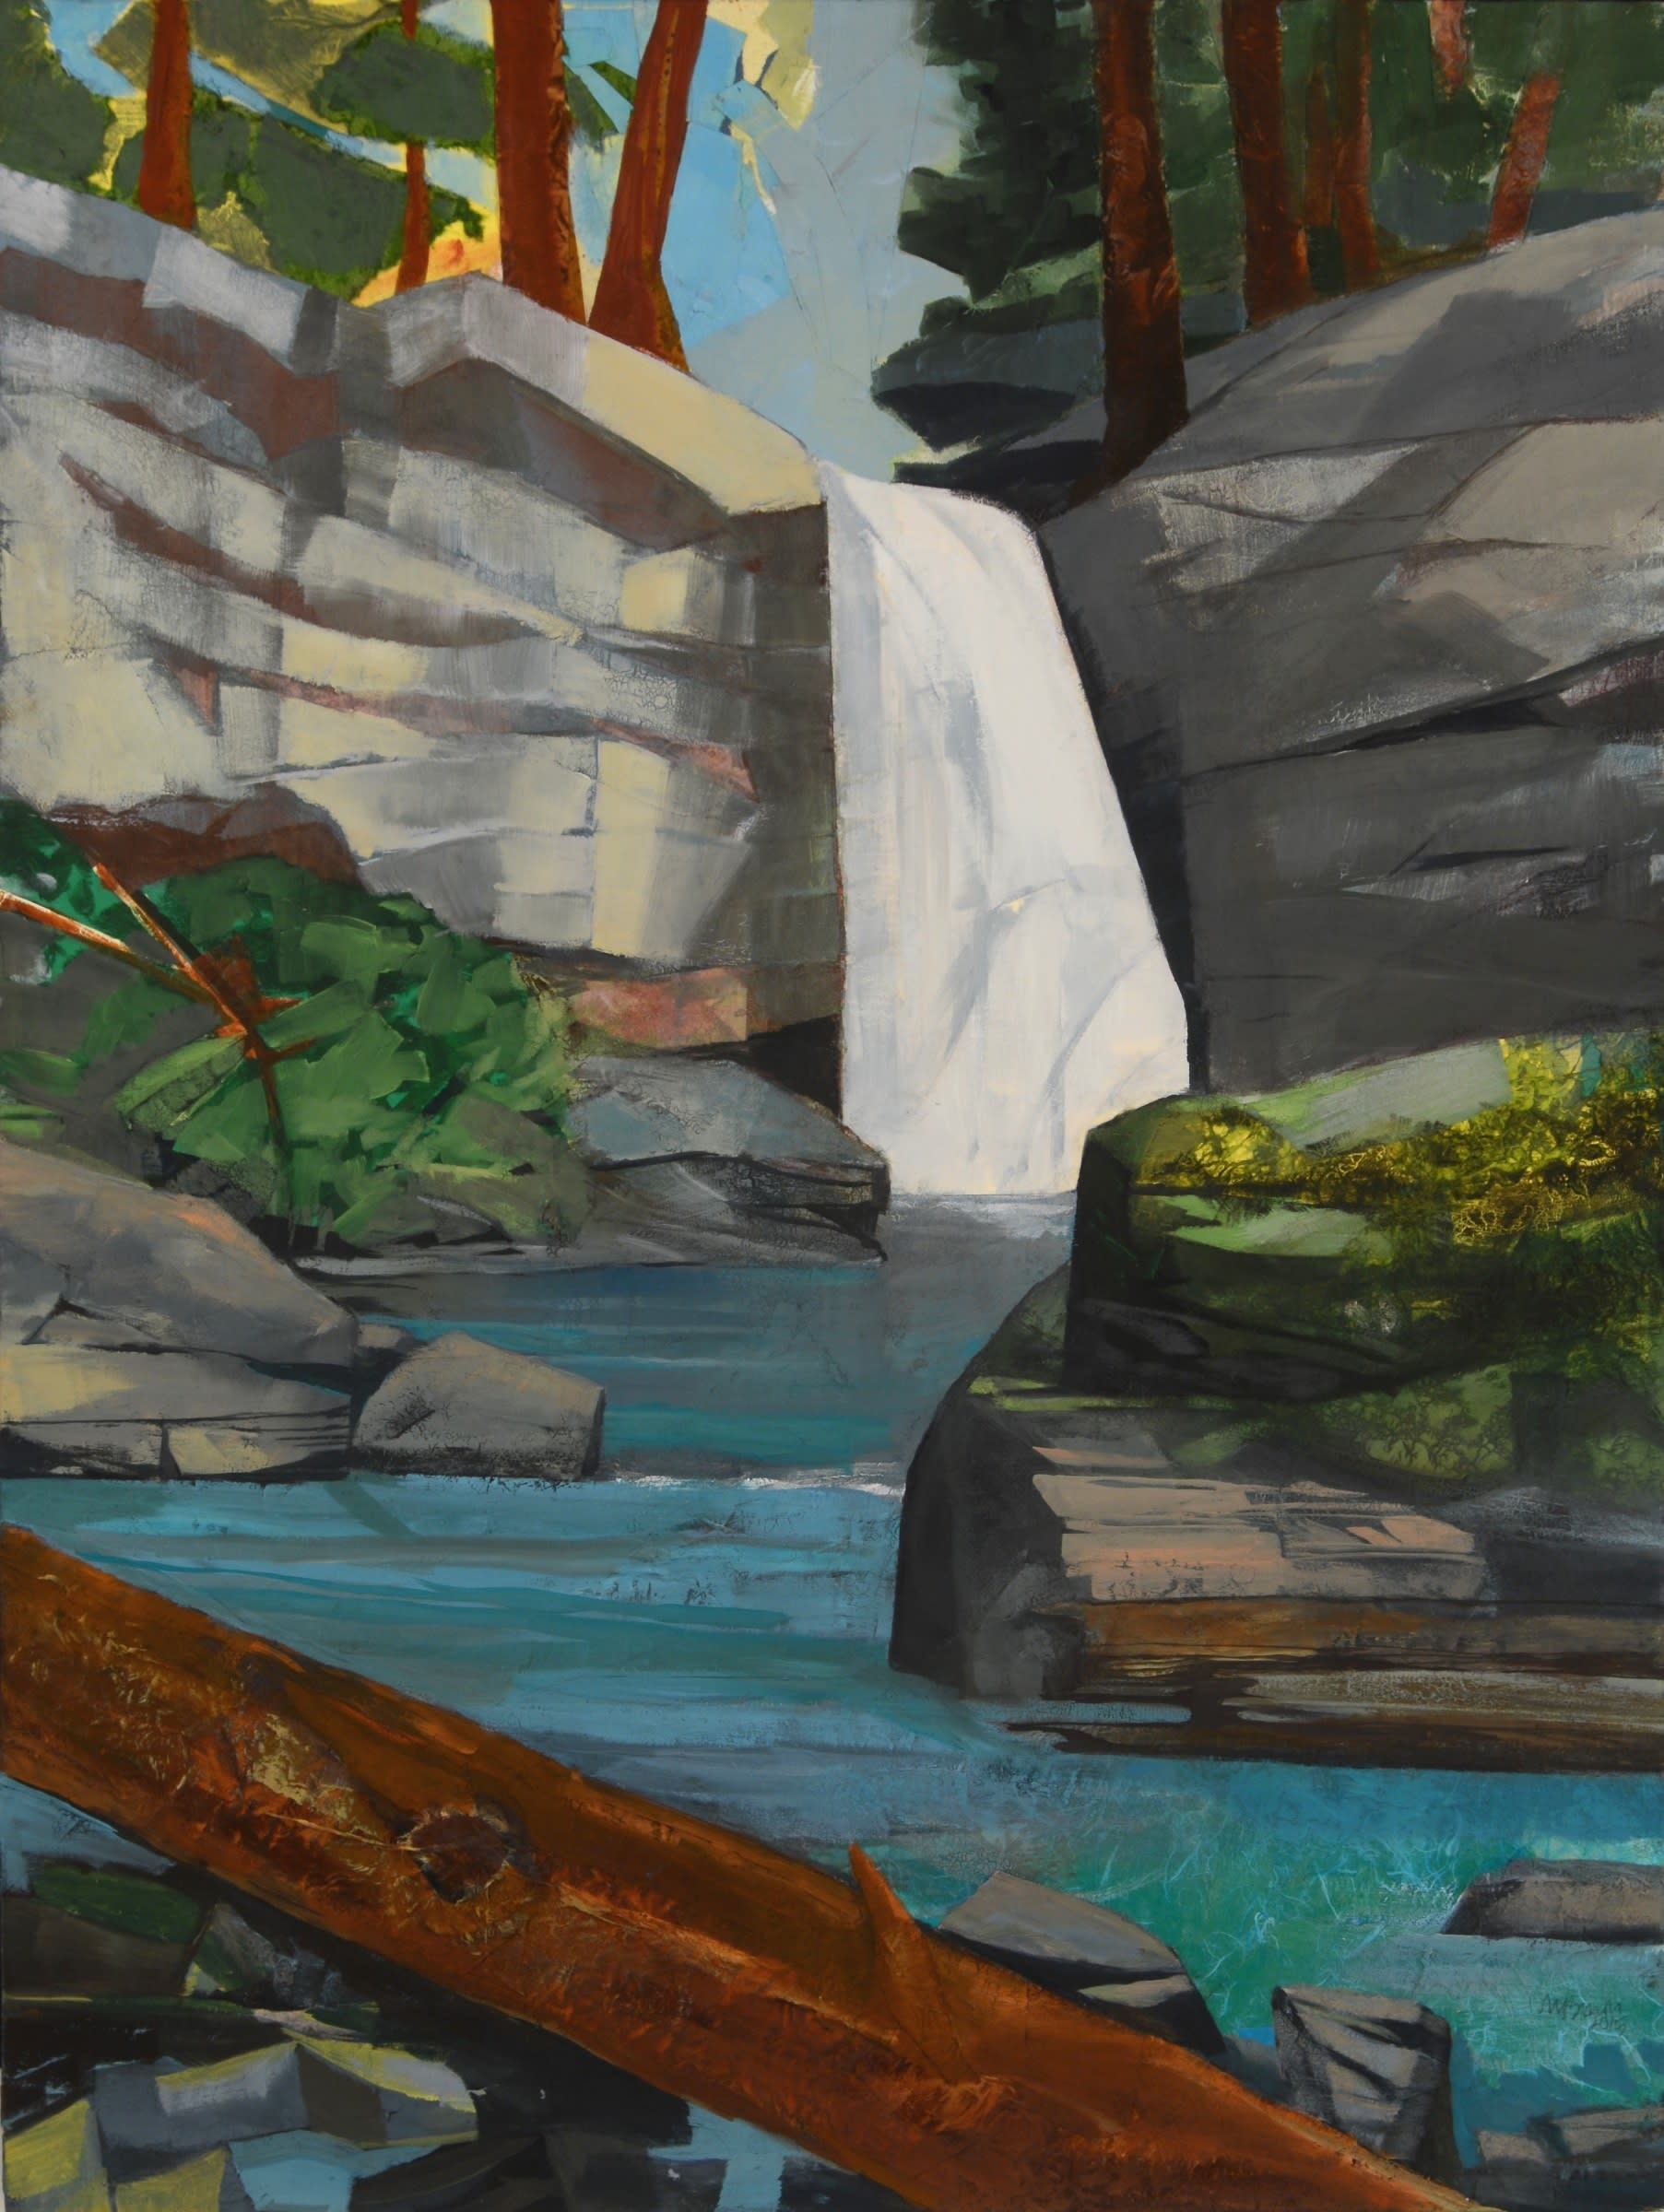 Mariella Bisson, Waterfall, Time and the Forest, Oil and mixed media on linen 40 x 30 x 2 inches